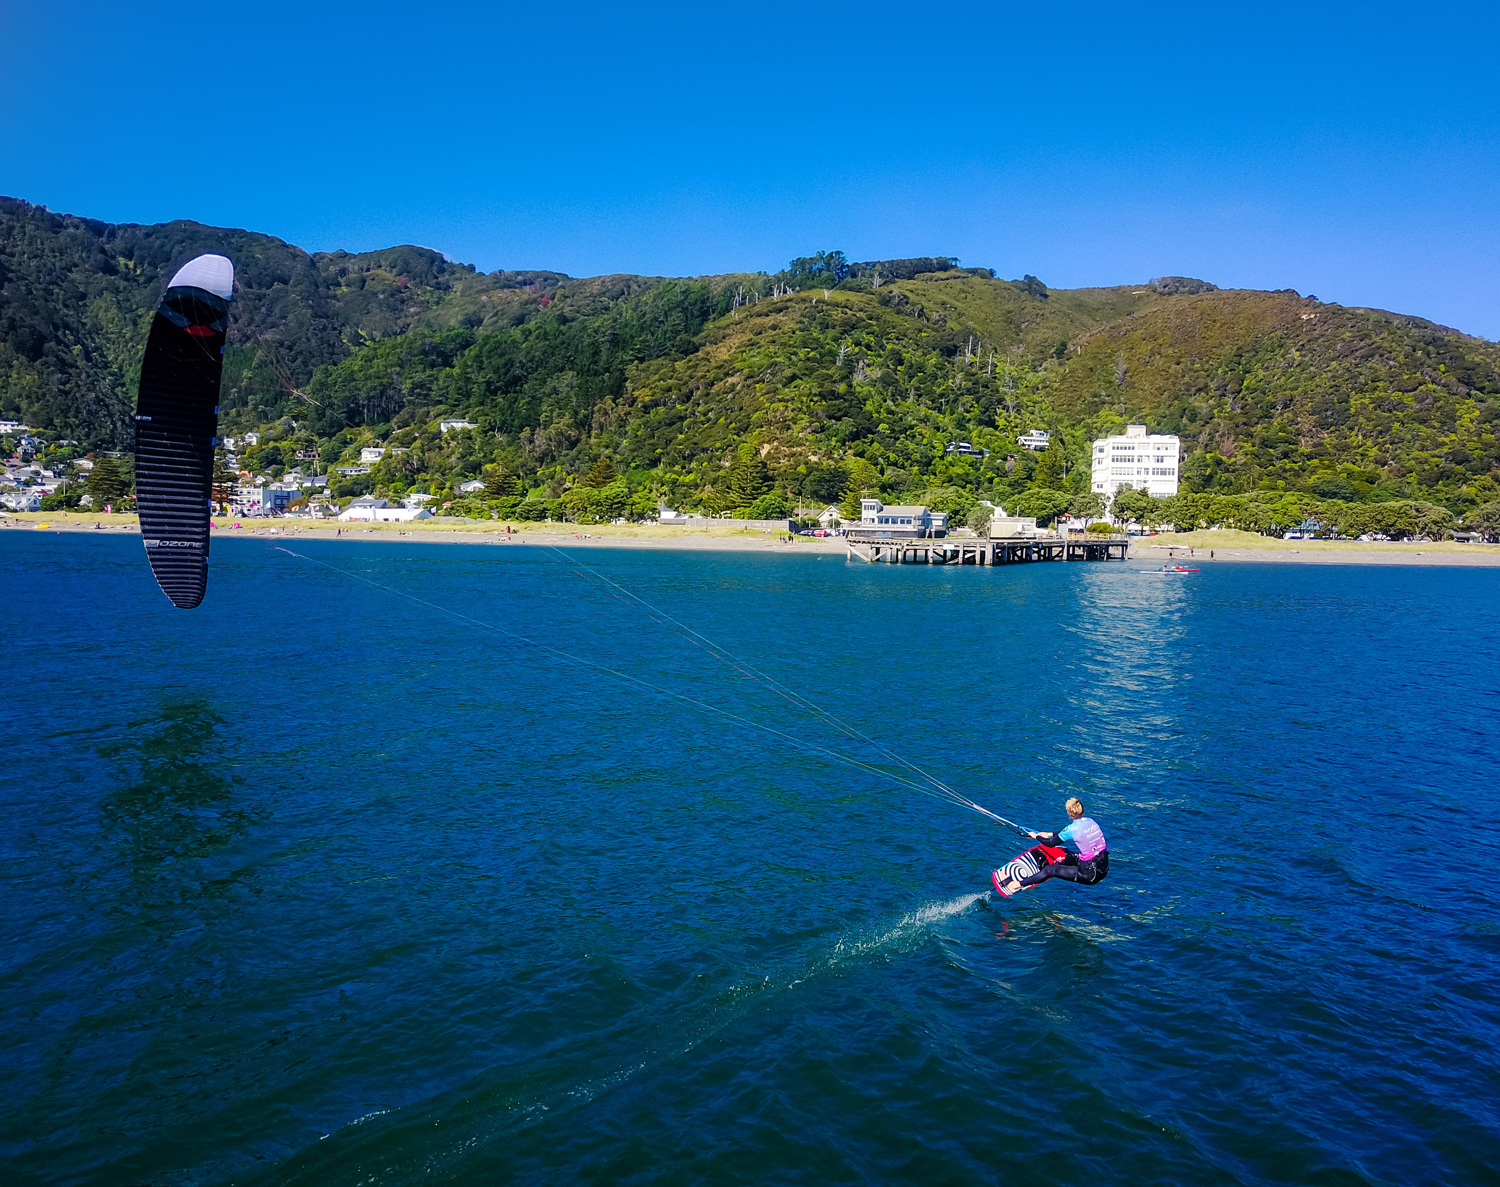 kite-foiling-new-zealand-event